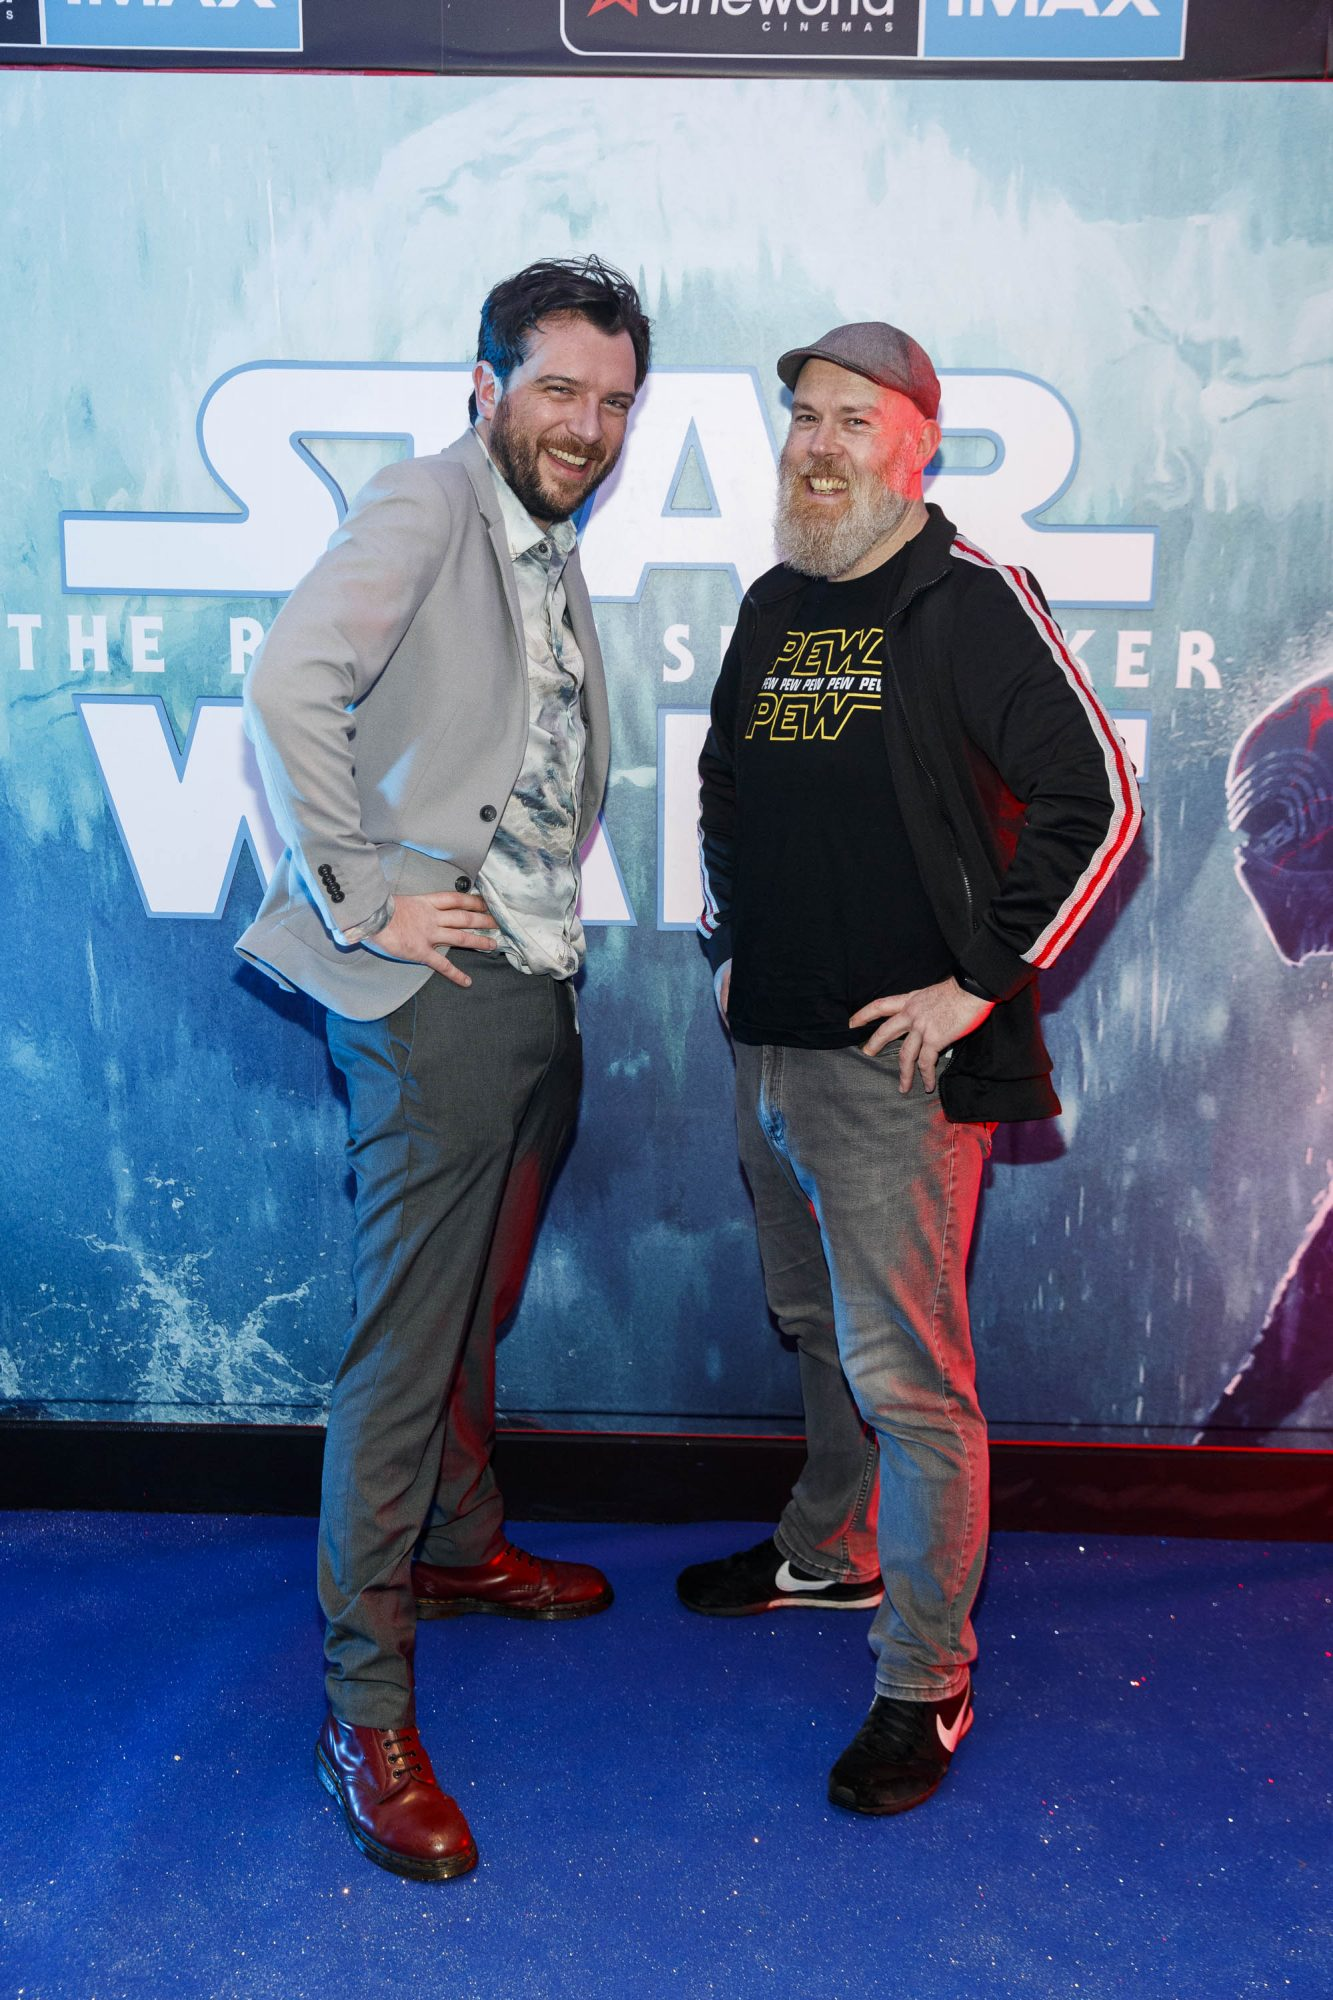 Kevin McGahern and Edwin Sammon pictured at the Irish premiere screening of Star Wars: The Rise of Skywalker at Cineworld, Dublin. Picture: Andres Poveda